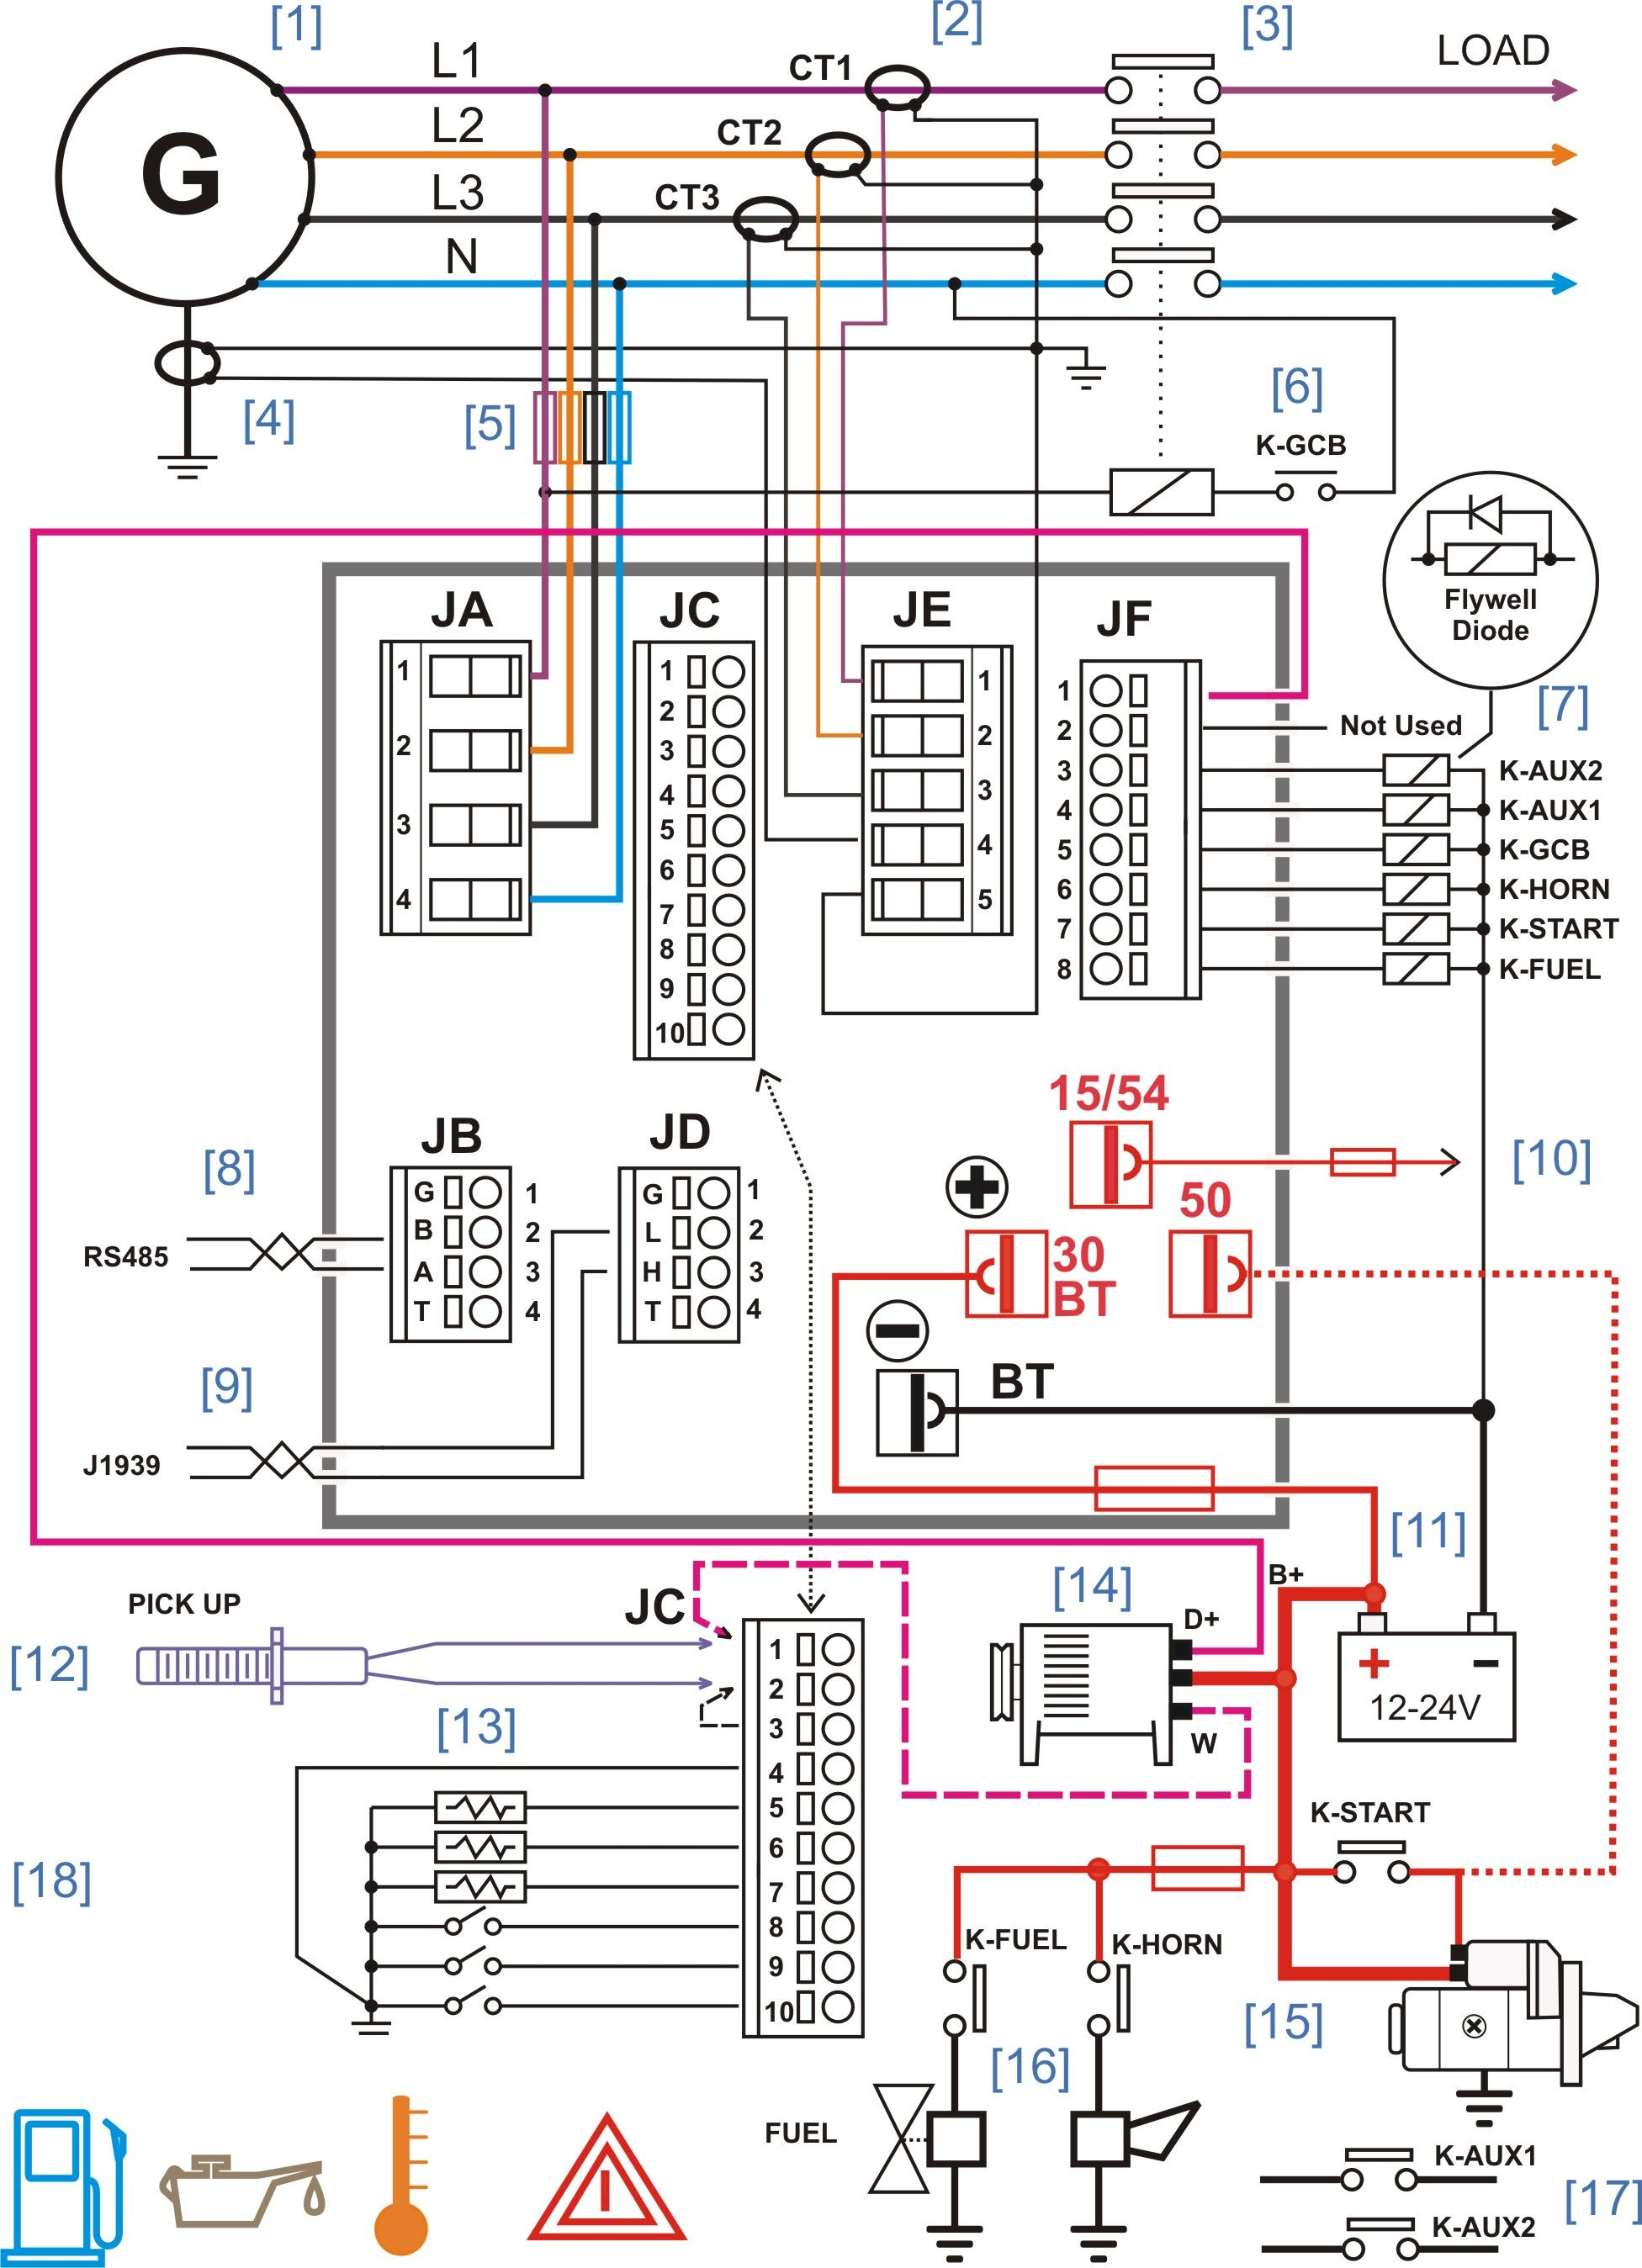 nec generator wiring schematic wiring diagram rh blaknwyt co generator wiring diagram and electrical schematics generac generator wiring schematic